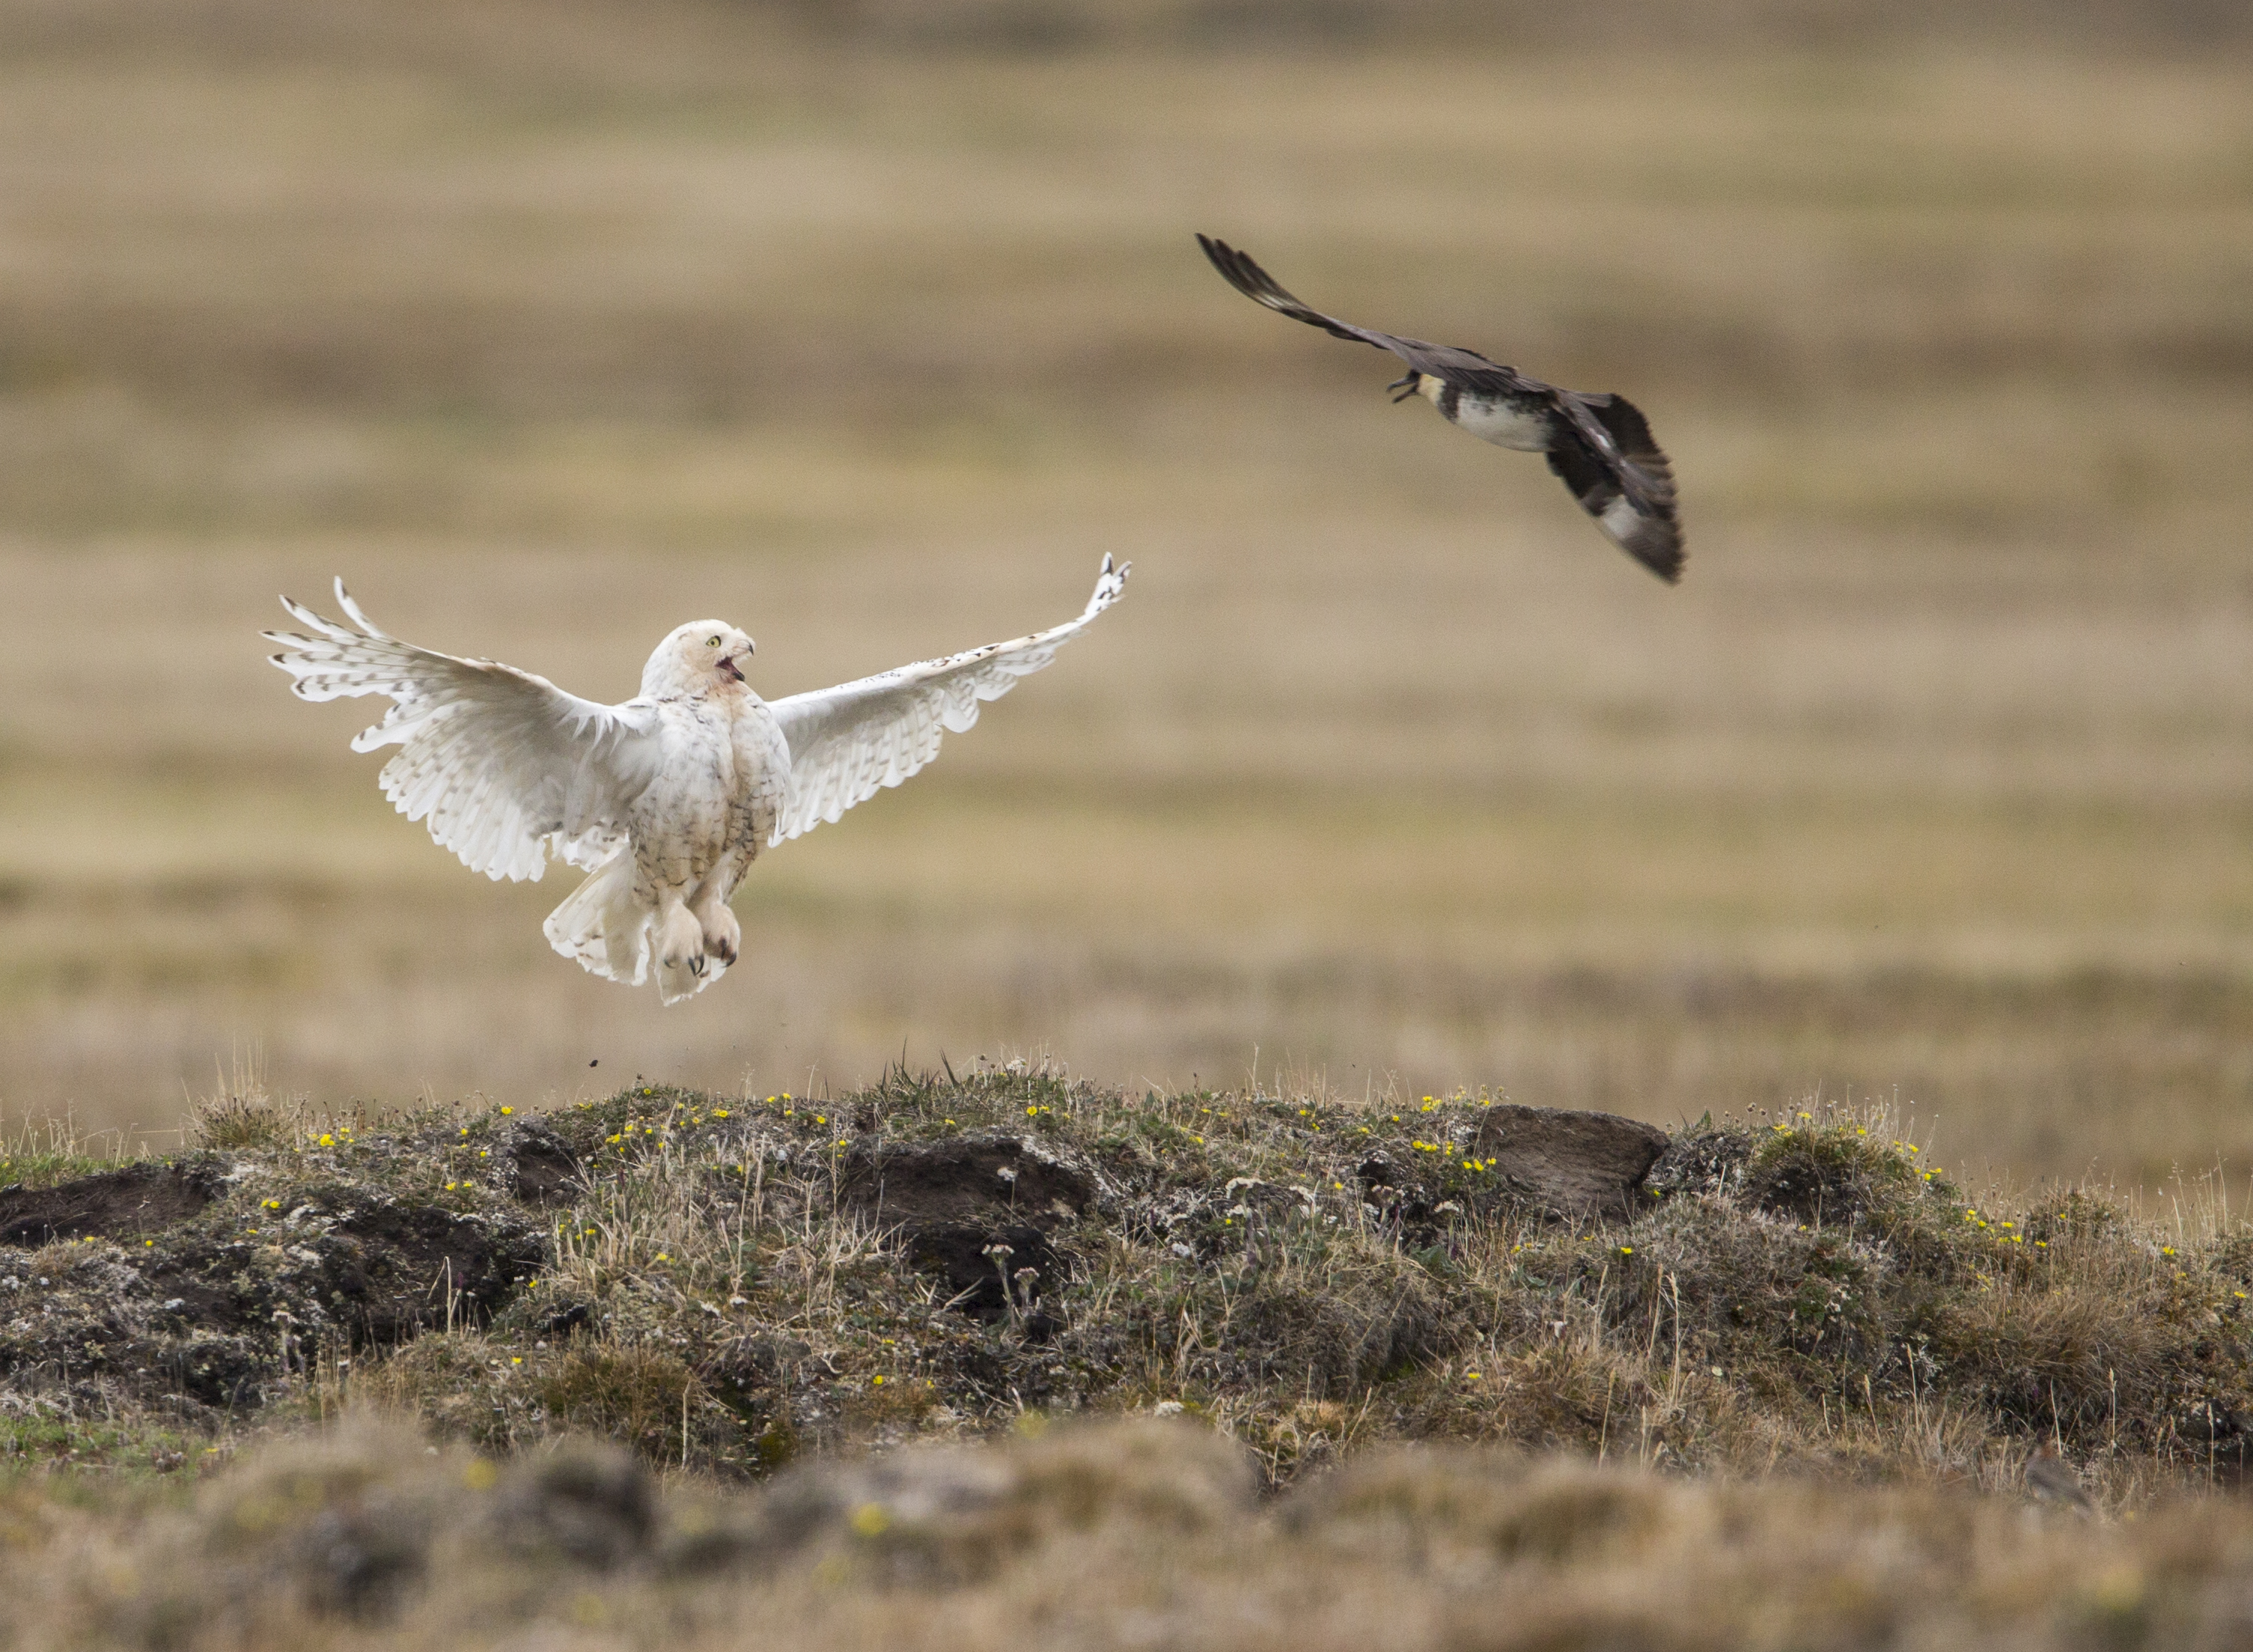 A pomarine jaeger attacks a snowy owl near her nest on the arctic tundra. 2016 Mountaineers Books, Braided River Imprint (Paul Bannick) ONE TIME RIGHTS